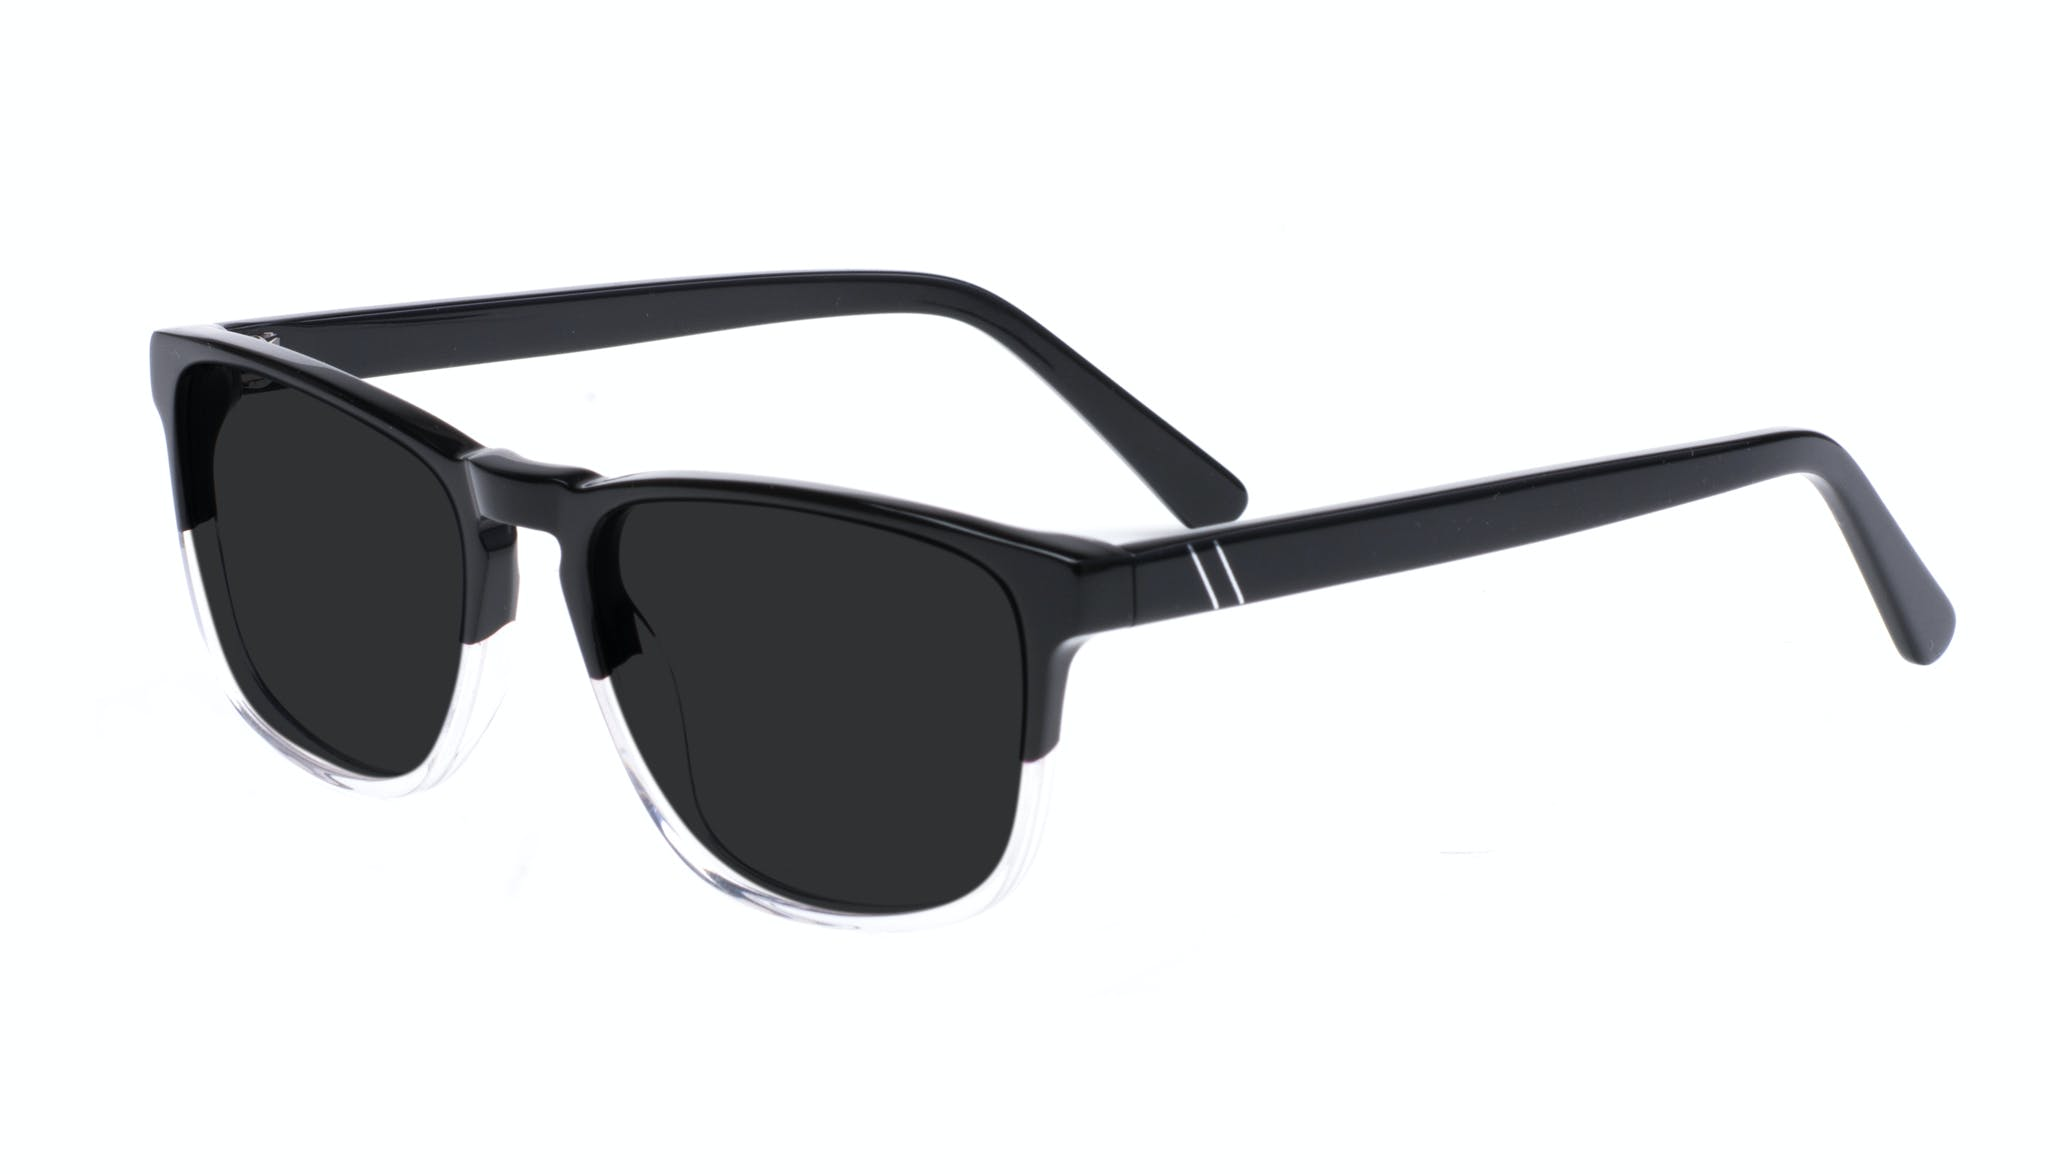 Affordable Fashion Glasses Rectangle Sunglasses Men Loft Black Diamond Tilt